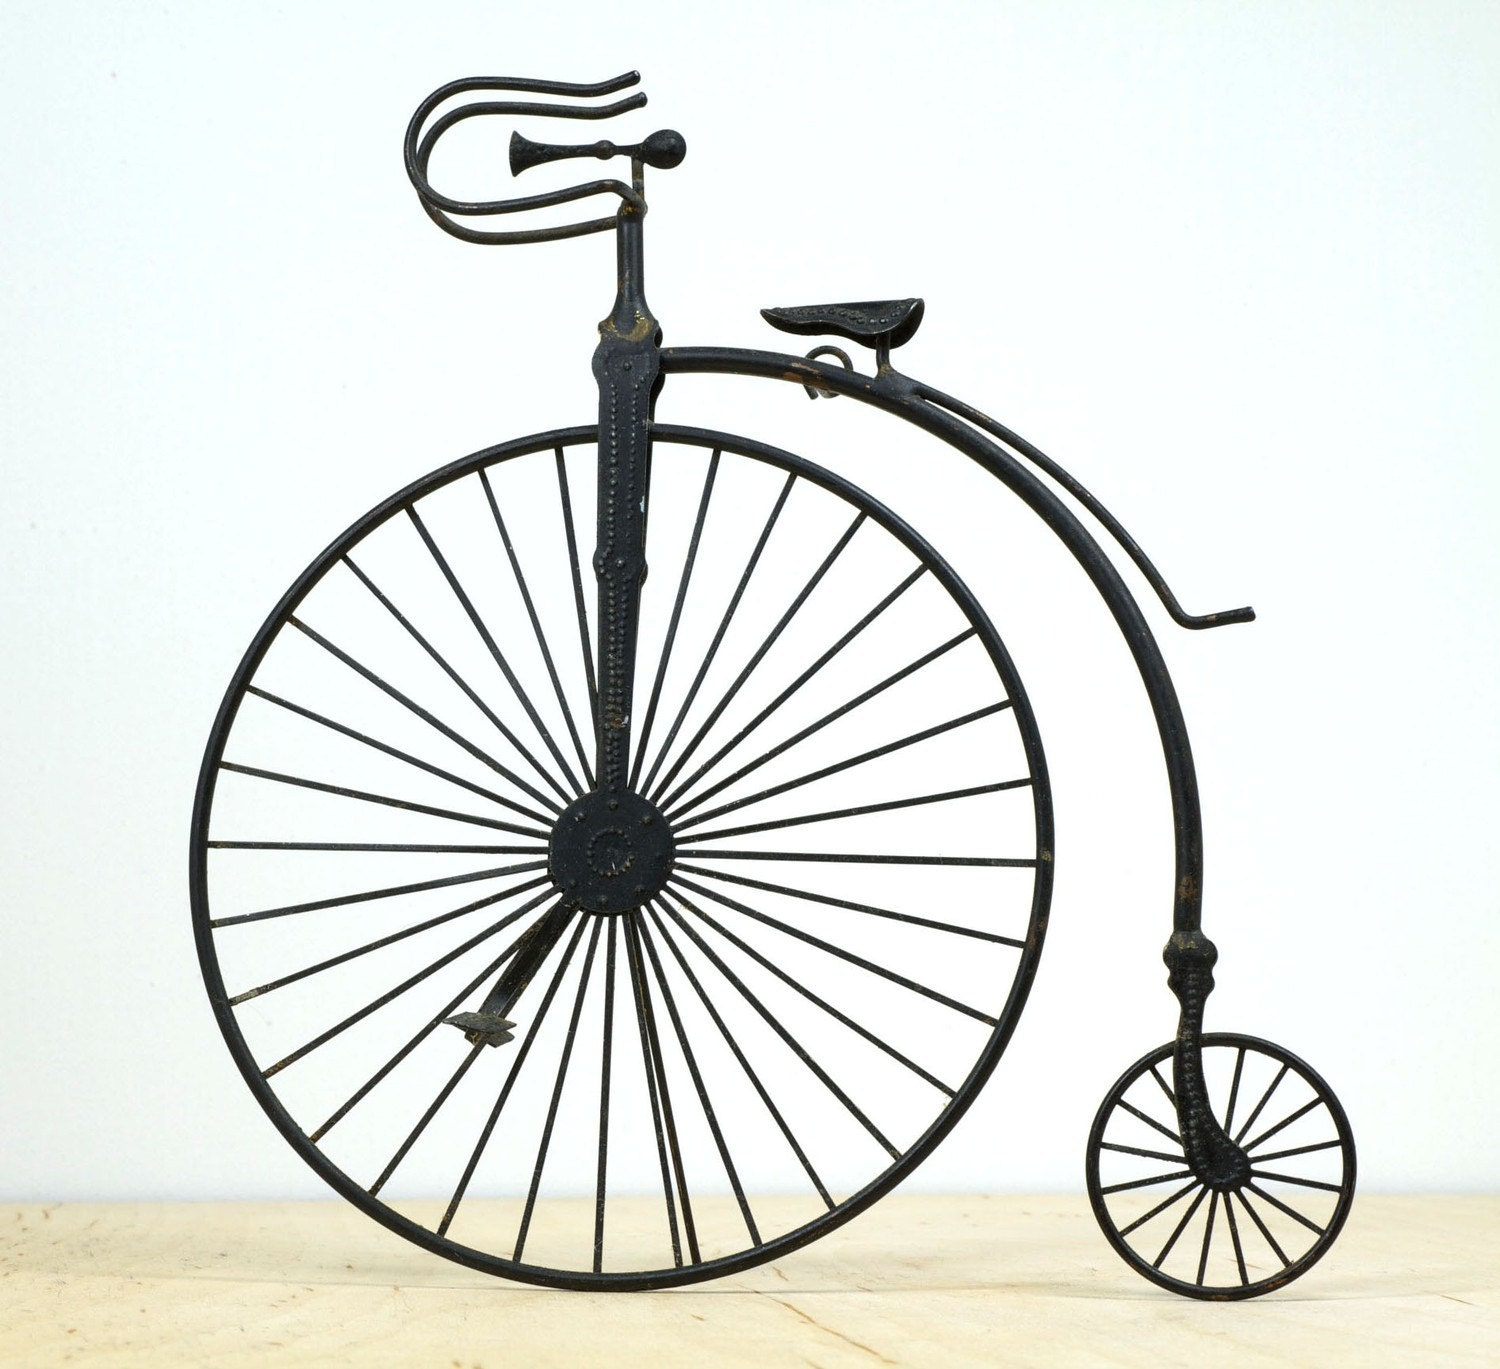 Vintage Metal High Wheel Bicycle Sculpture